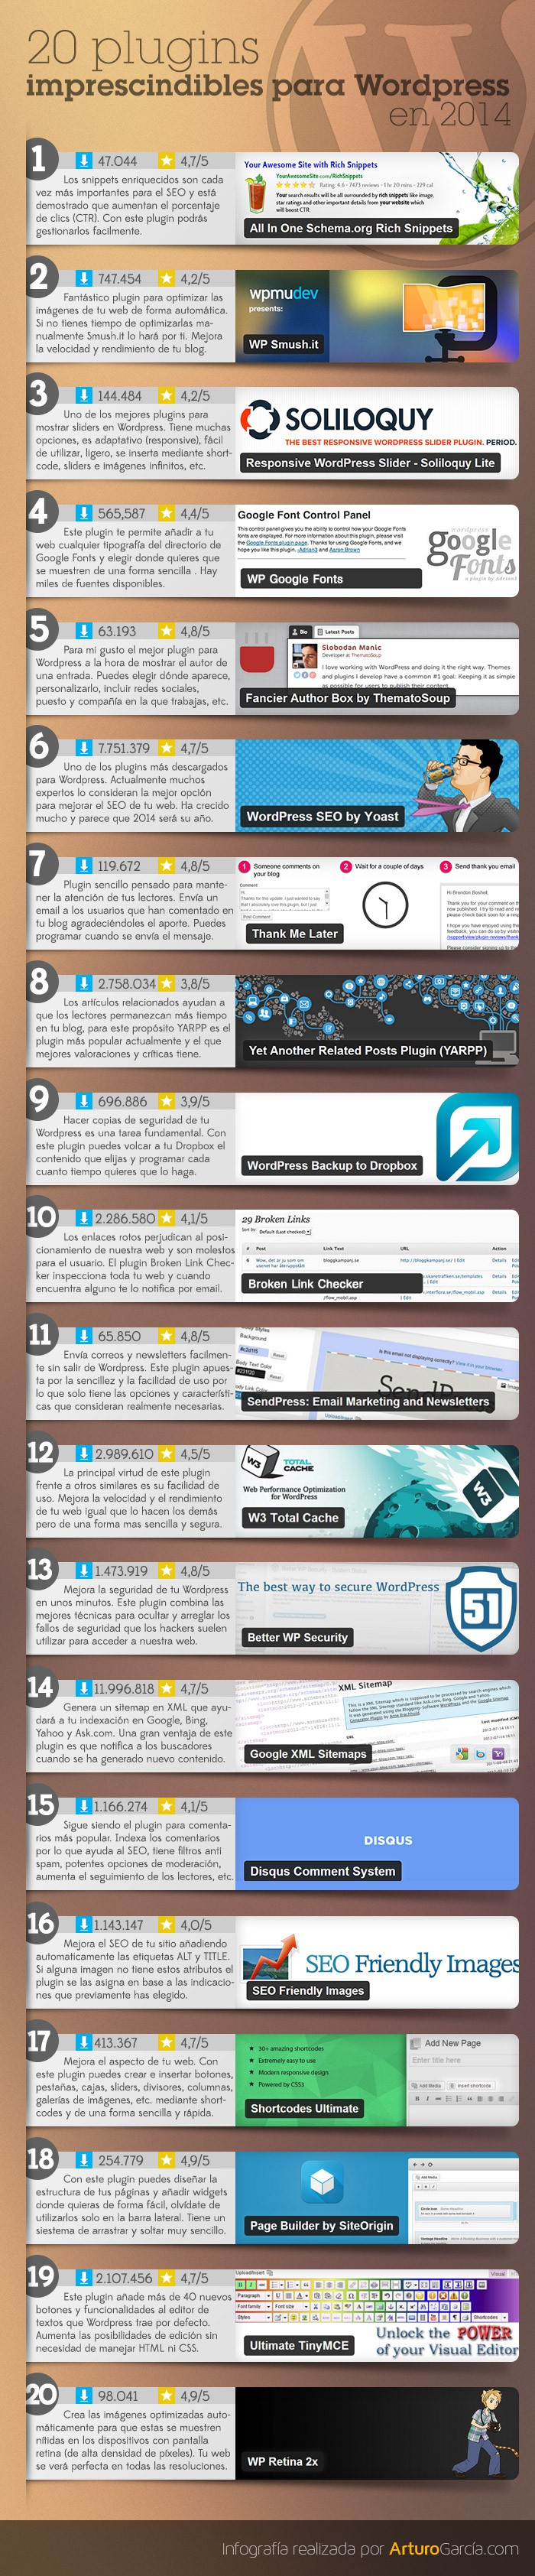 20 plugins imprescindibles wordpress 2014 20 plugins imprescindibles para WordPress en 2014 (infografía)